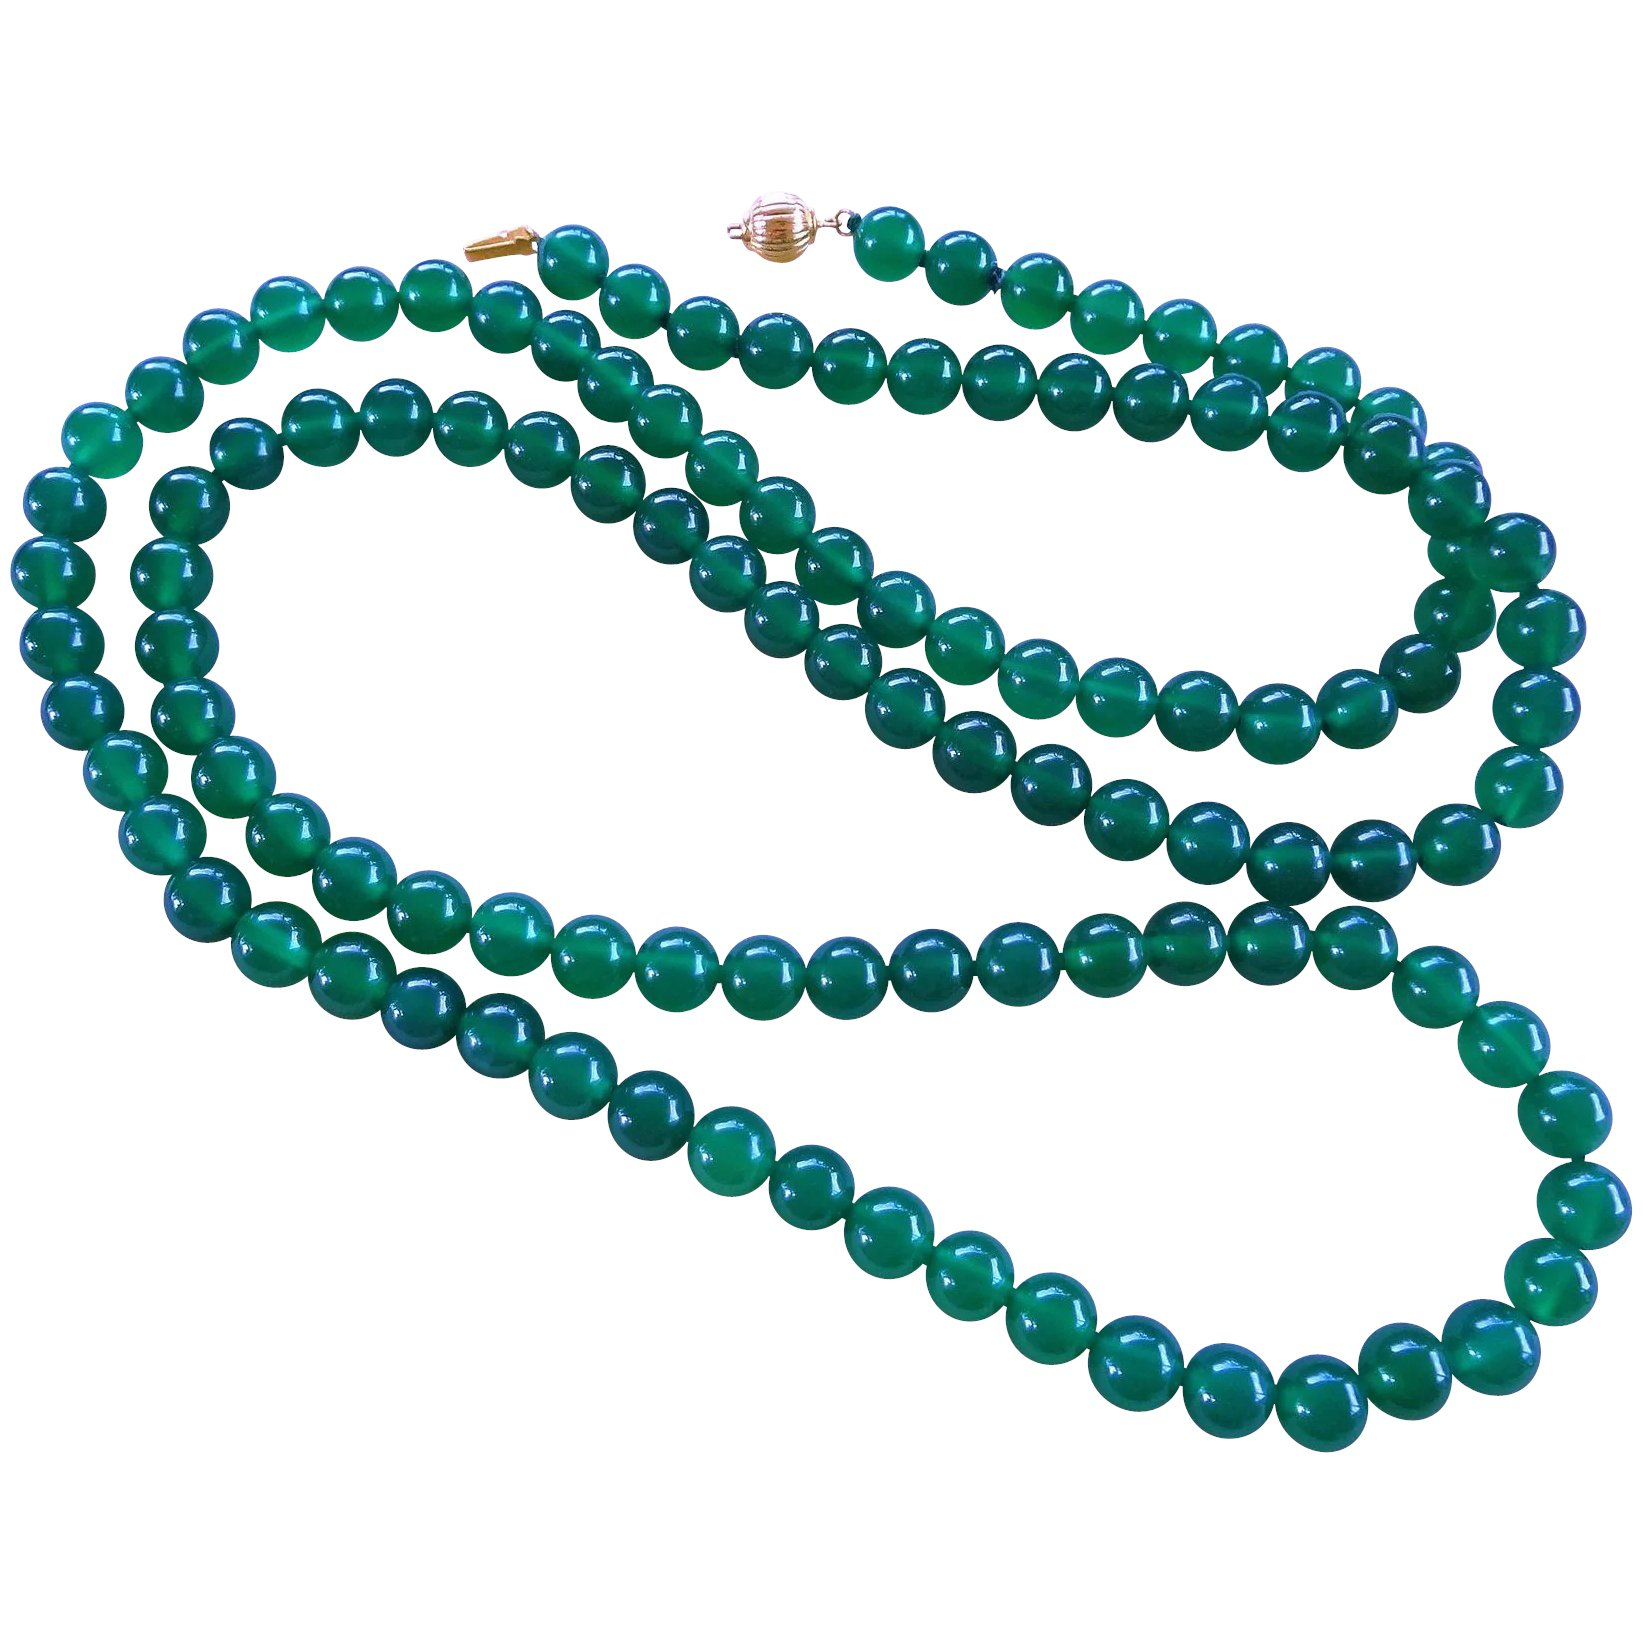 handmade stones mermaid item a natural with on shop necklace online chrysoprase from livemaster buy jewelry